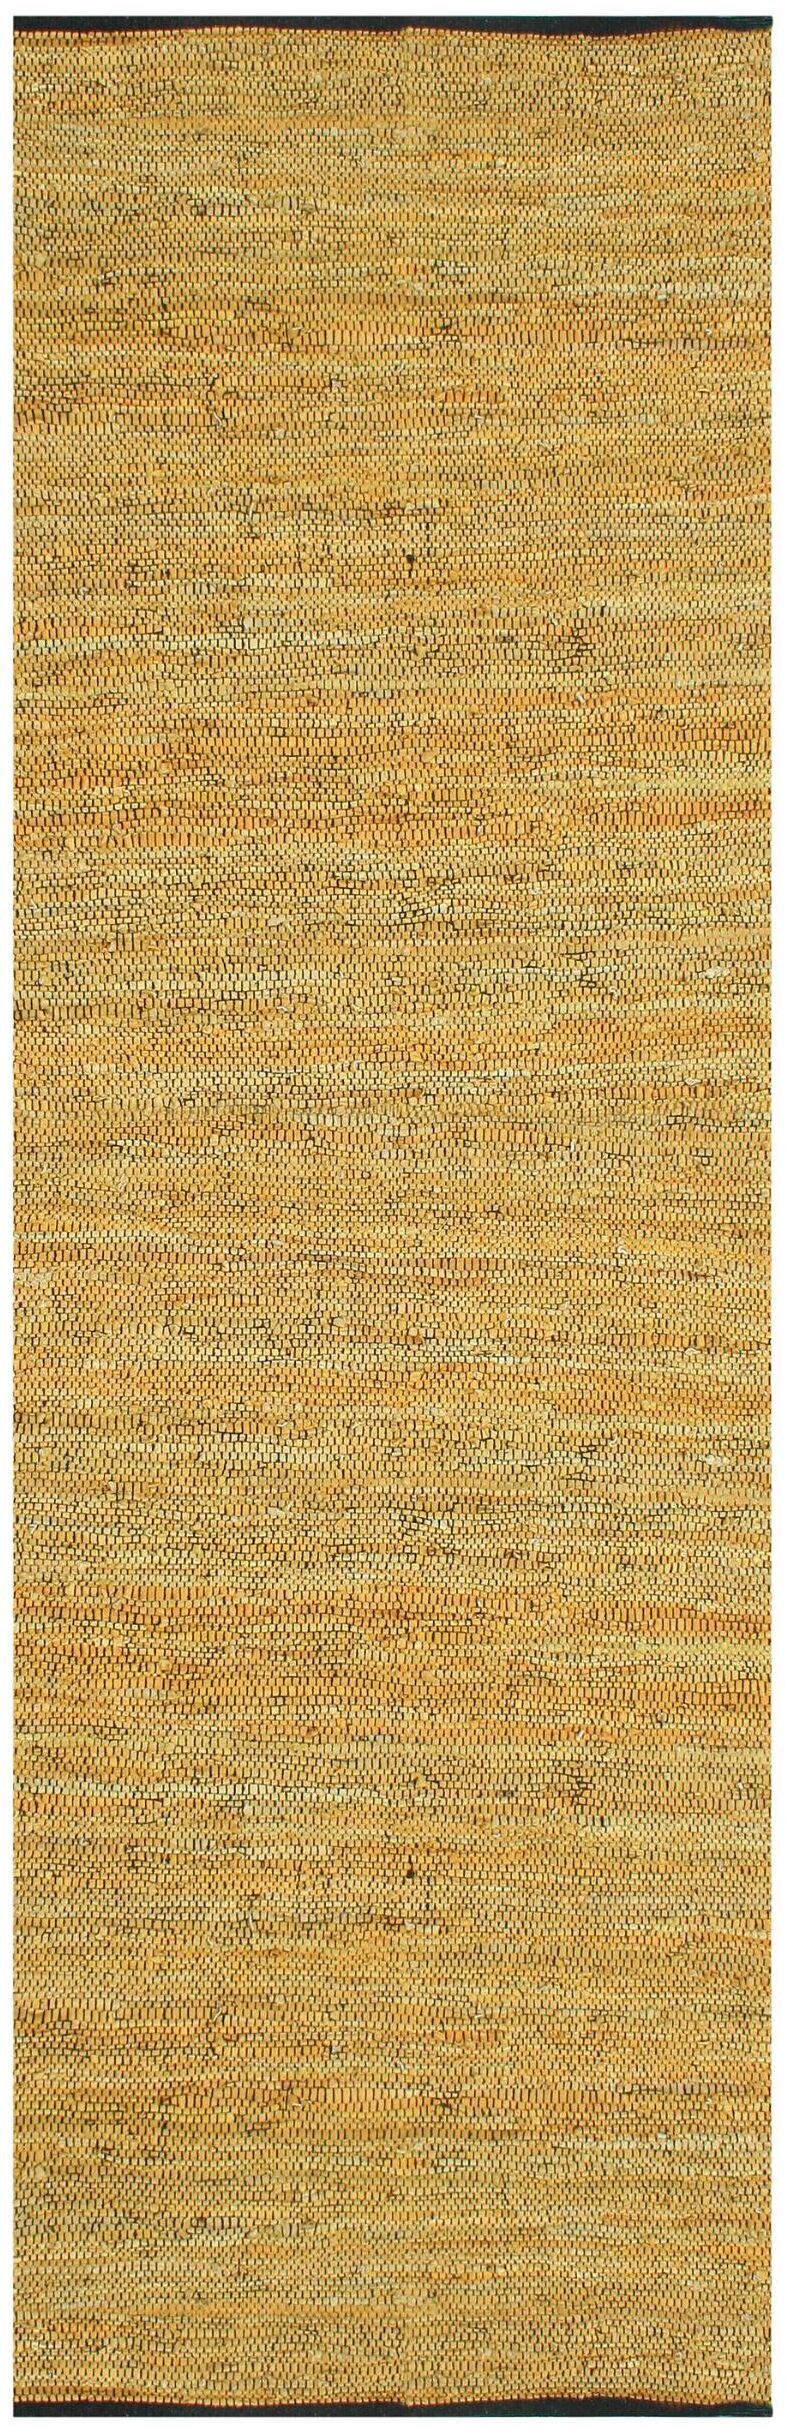 Sandford Leather Chindi Gold Area Rug Rug Size: Runner 2'6